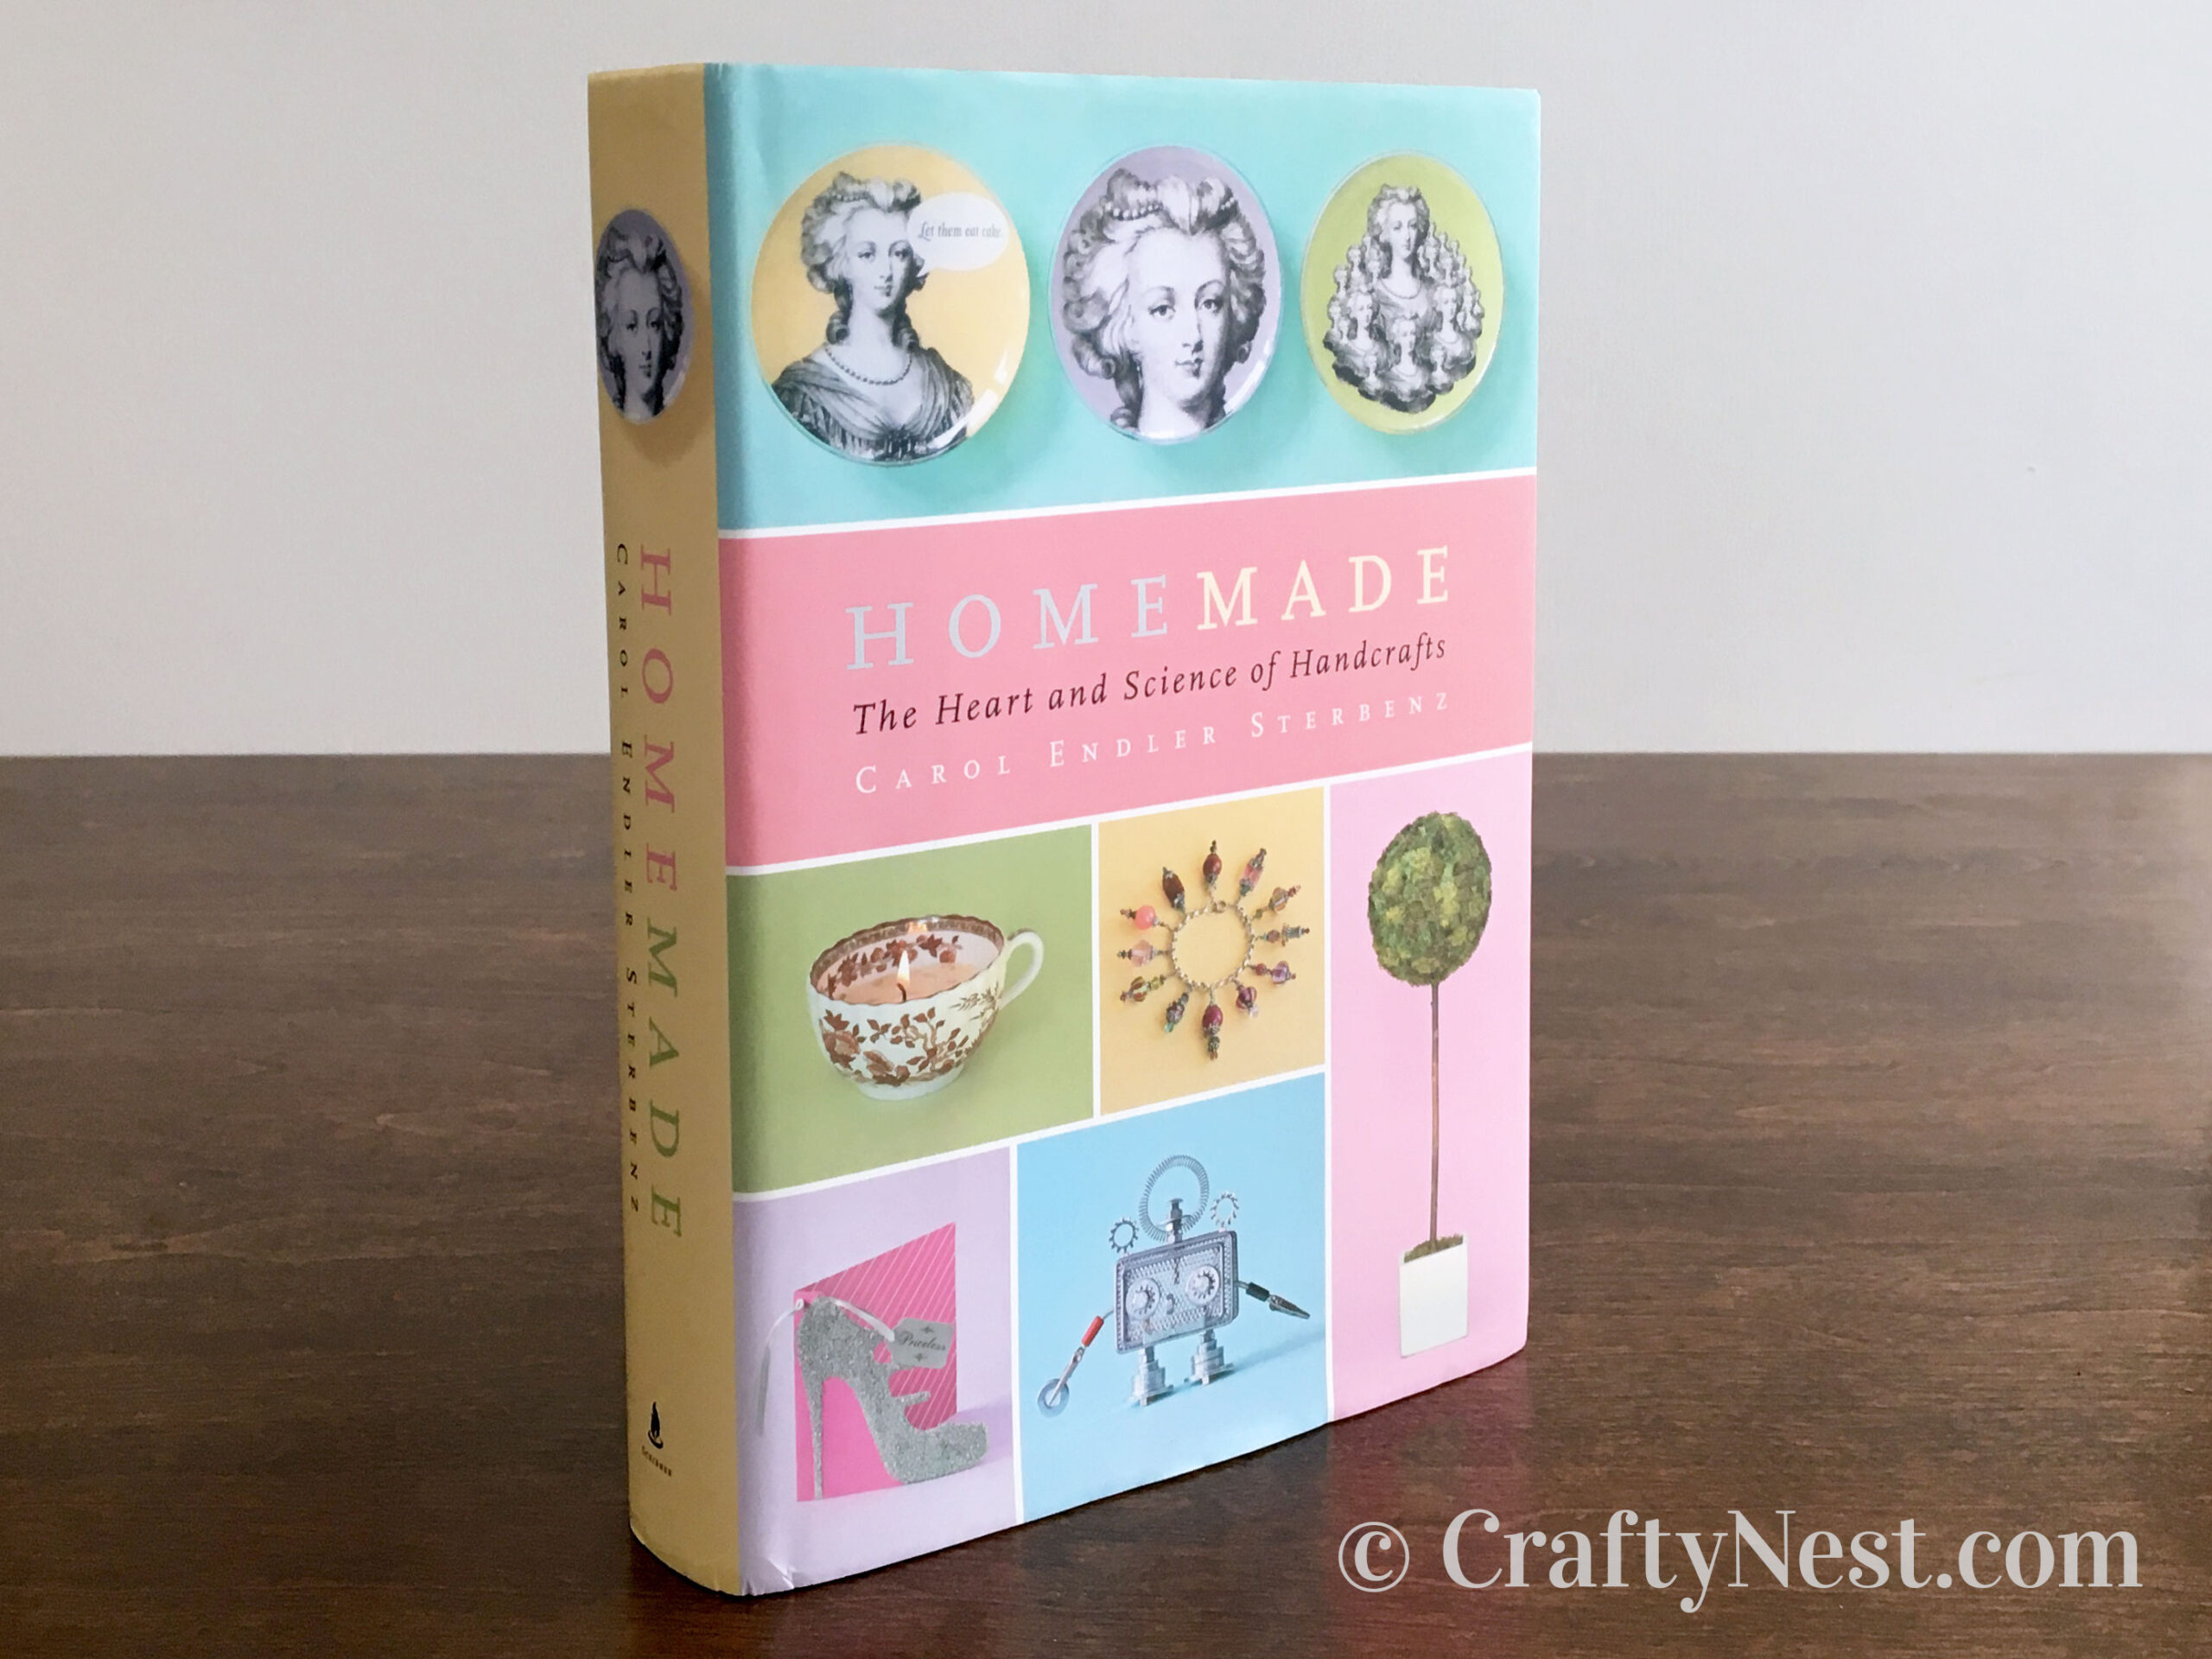 Homemade: The Heart and Science of Handcrafts closed book, photo